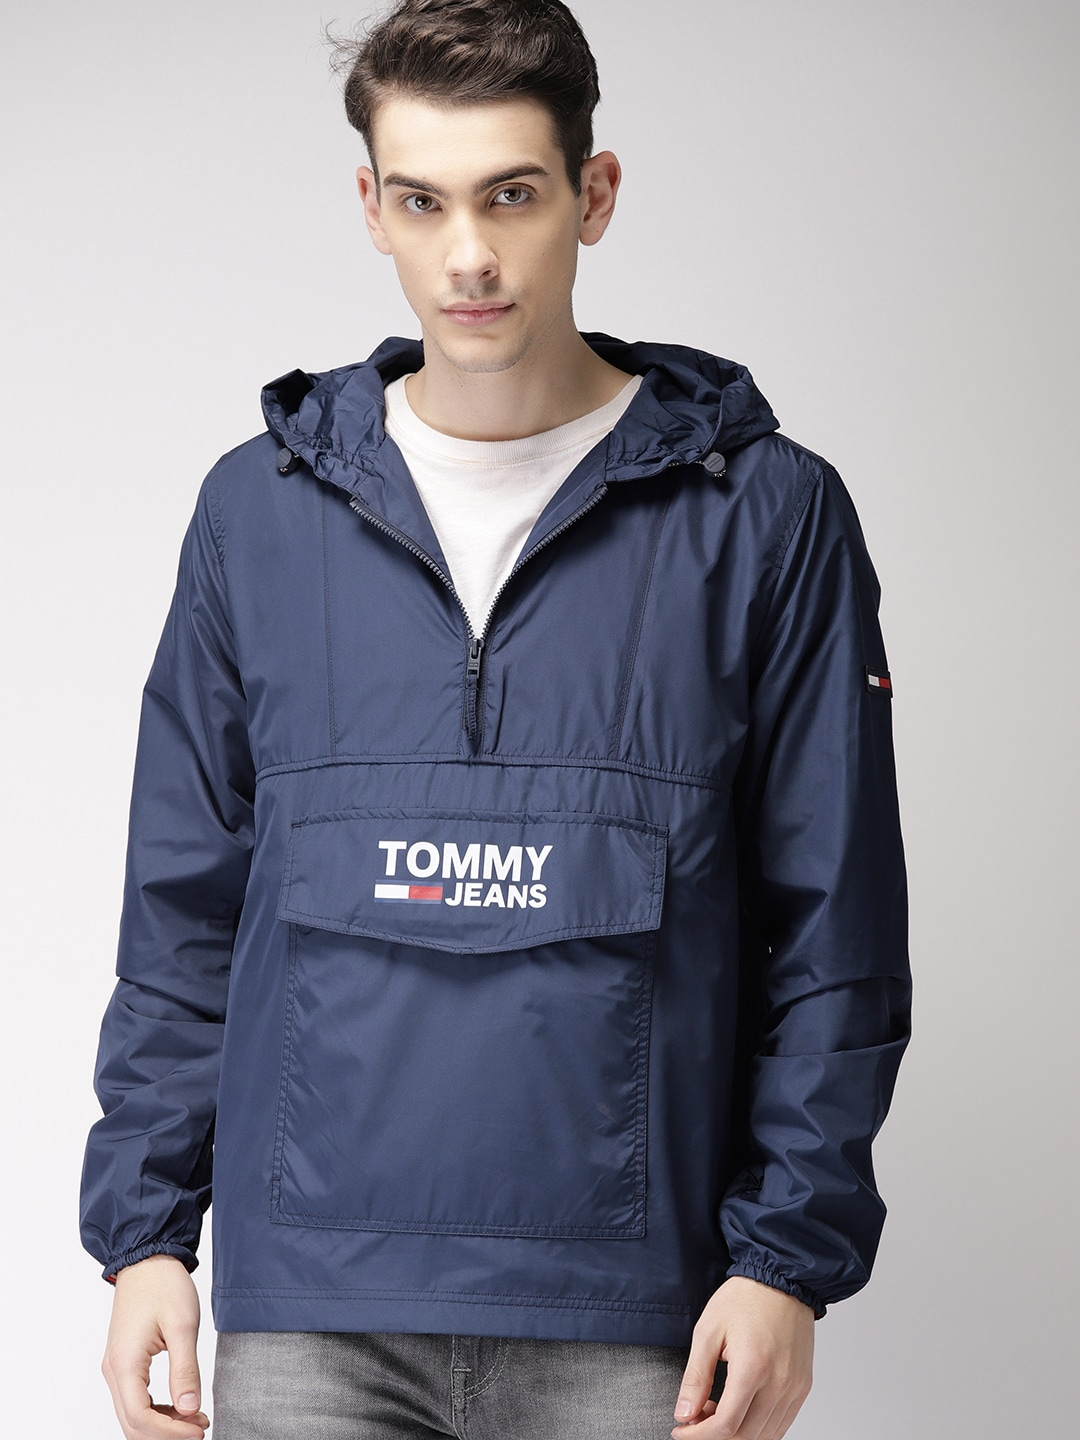 d9613051 Tommy Hilfiger Jeans Jackets - Buy Tommy Hilfiger Jeans Jackets online in  India